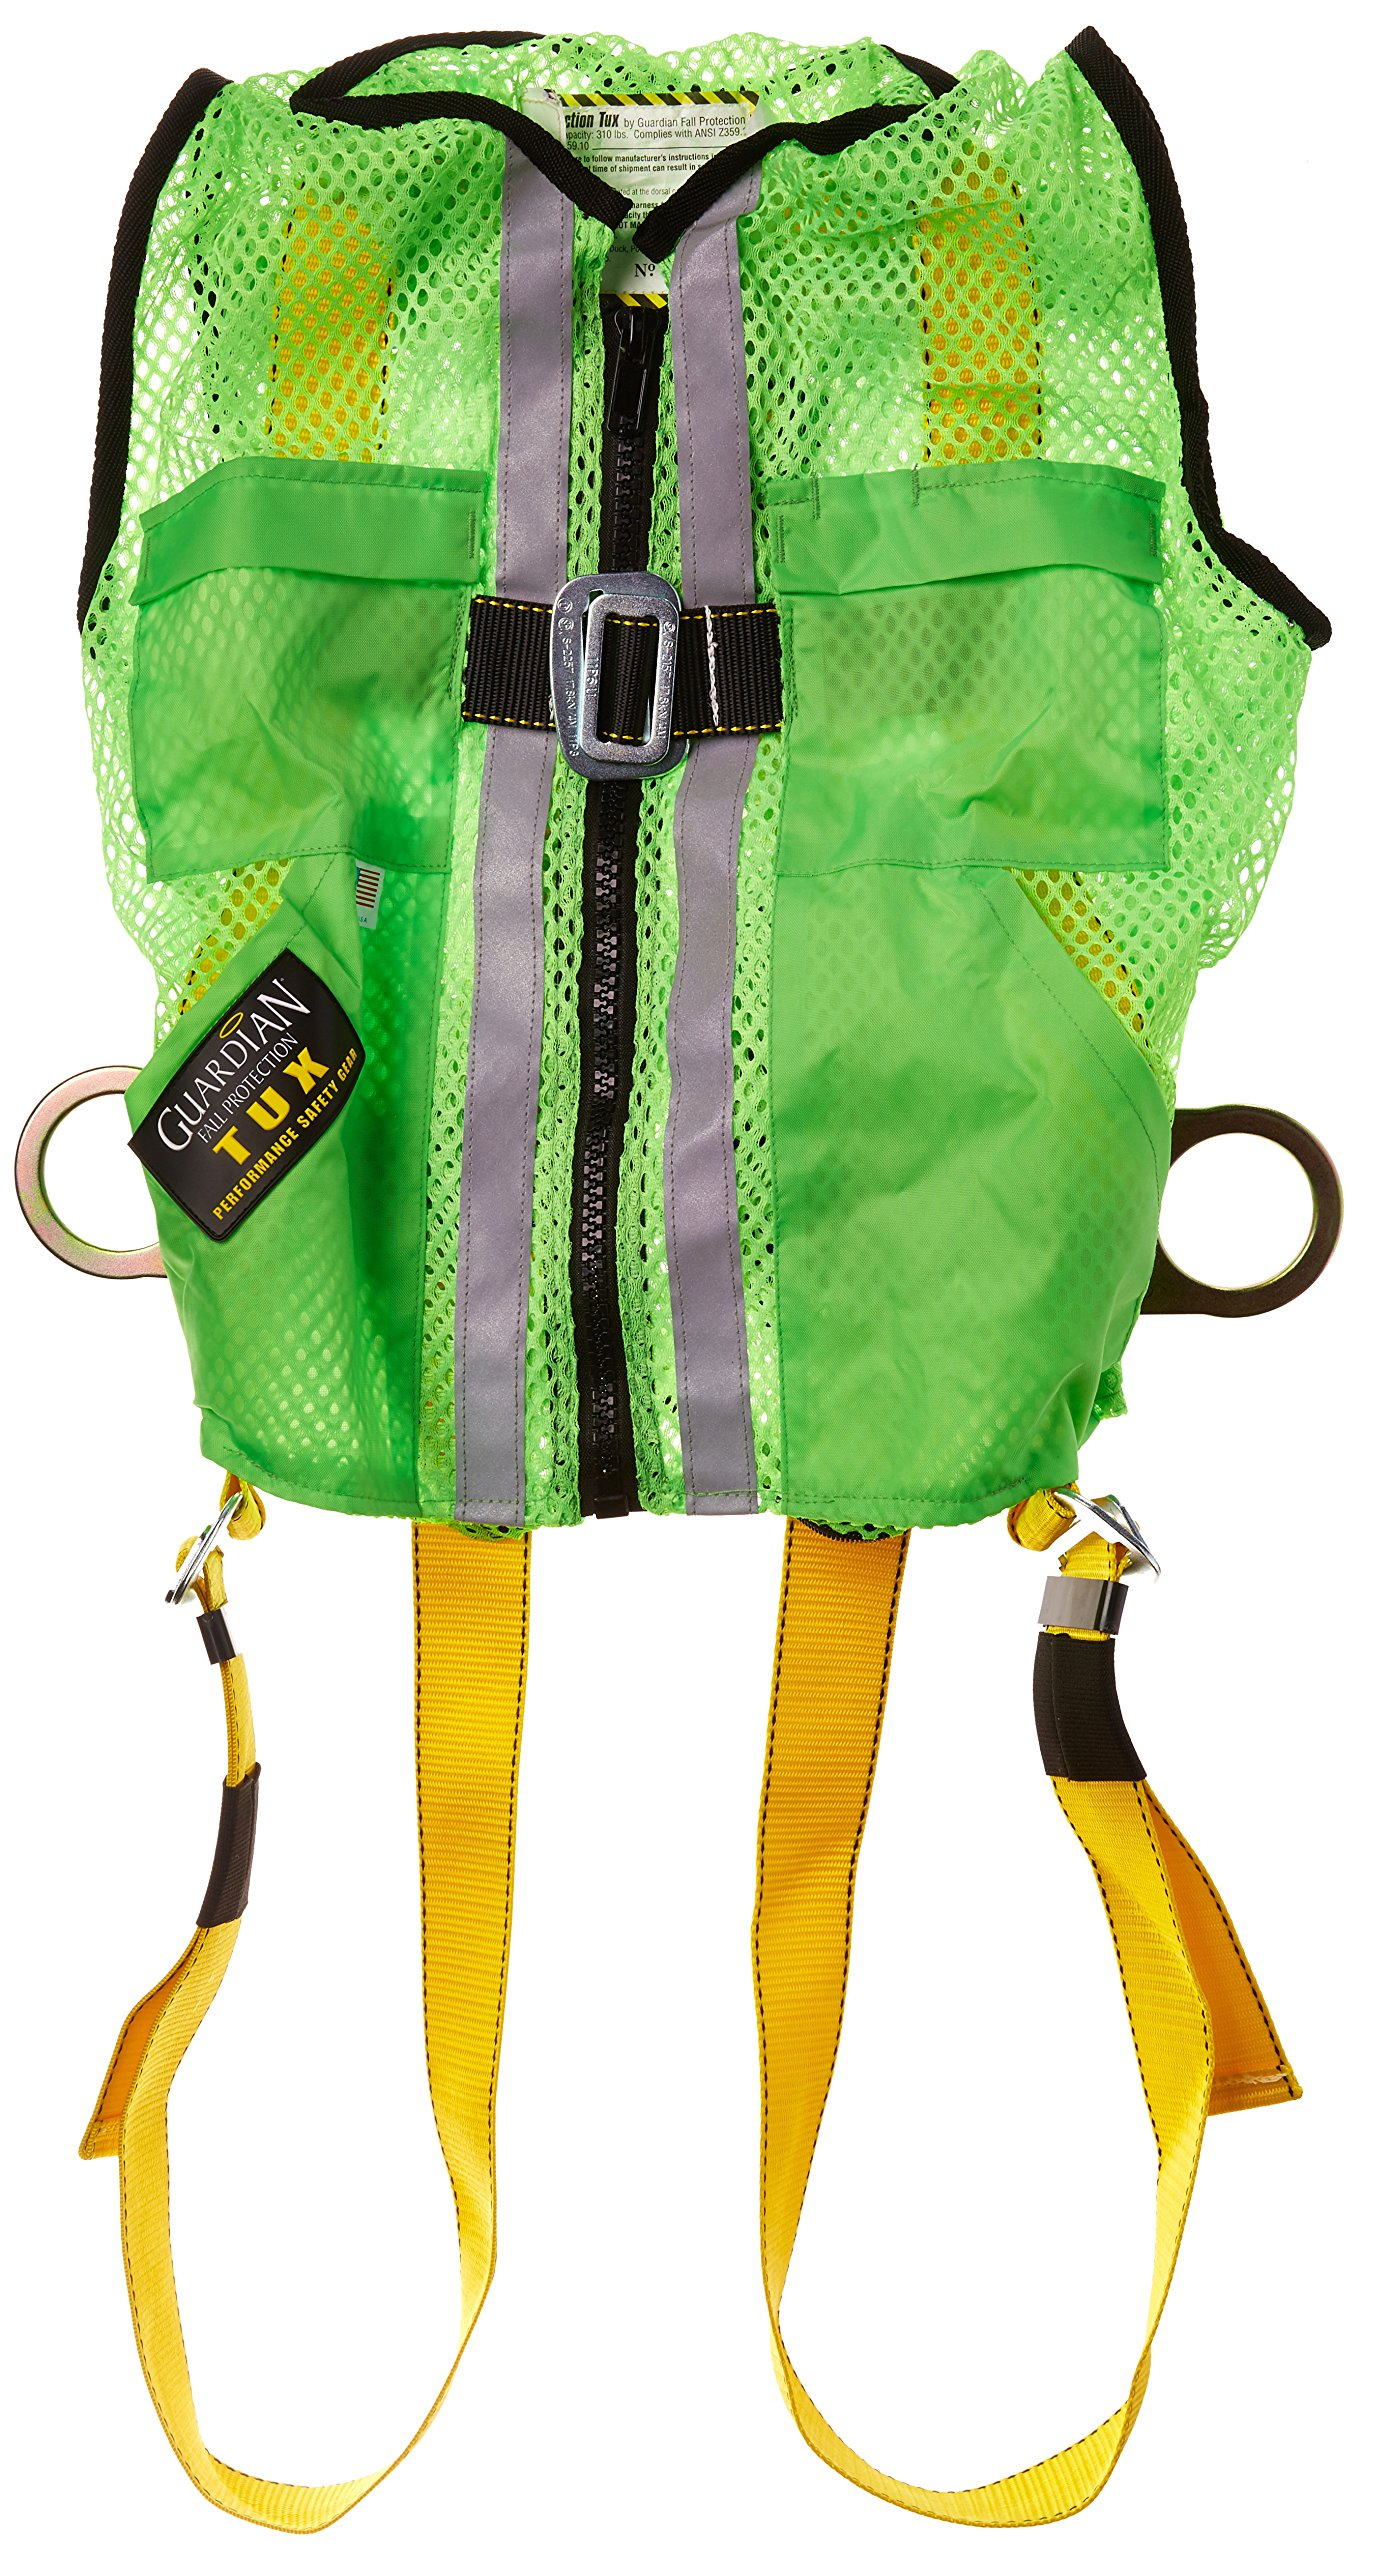 Guardian Fall Protection 02200 Green Mesh Construction Tux Harness, Small